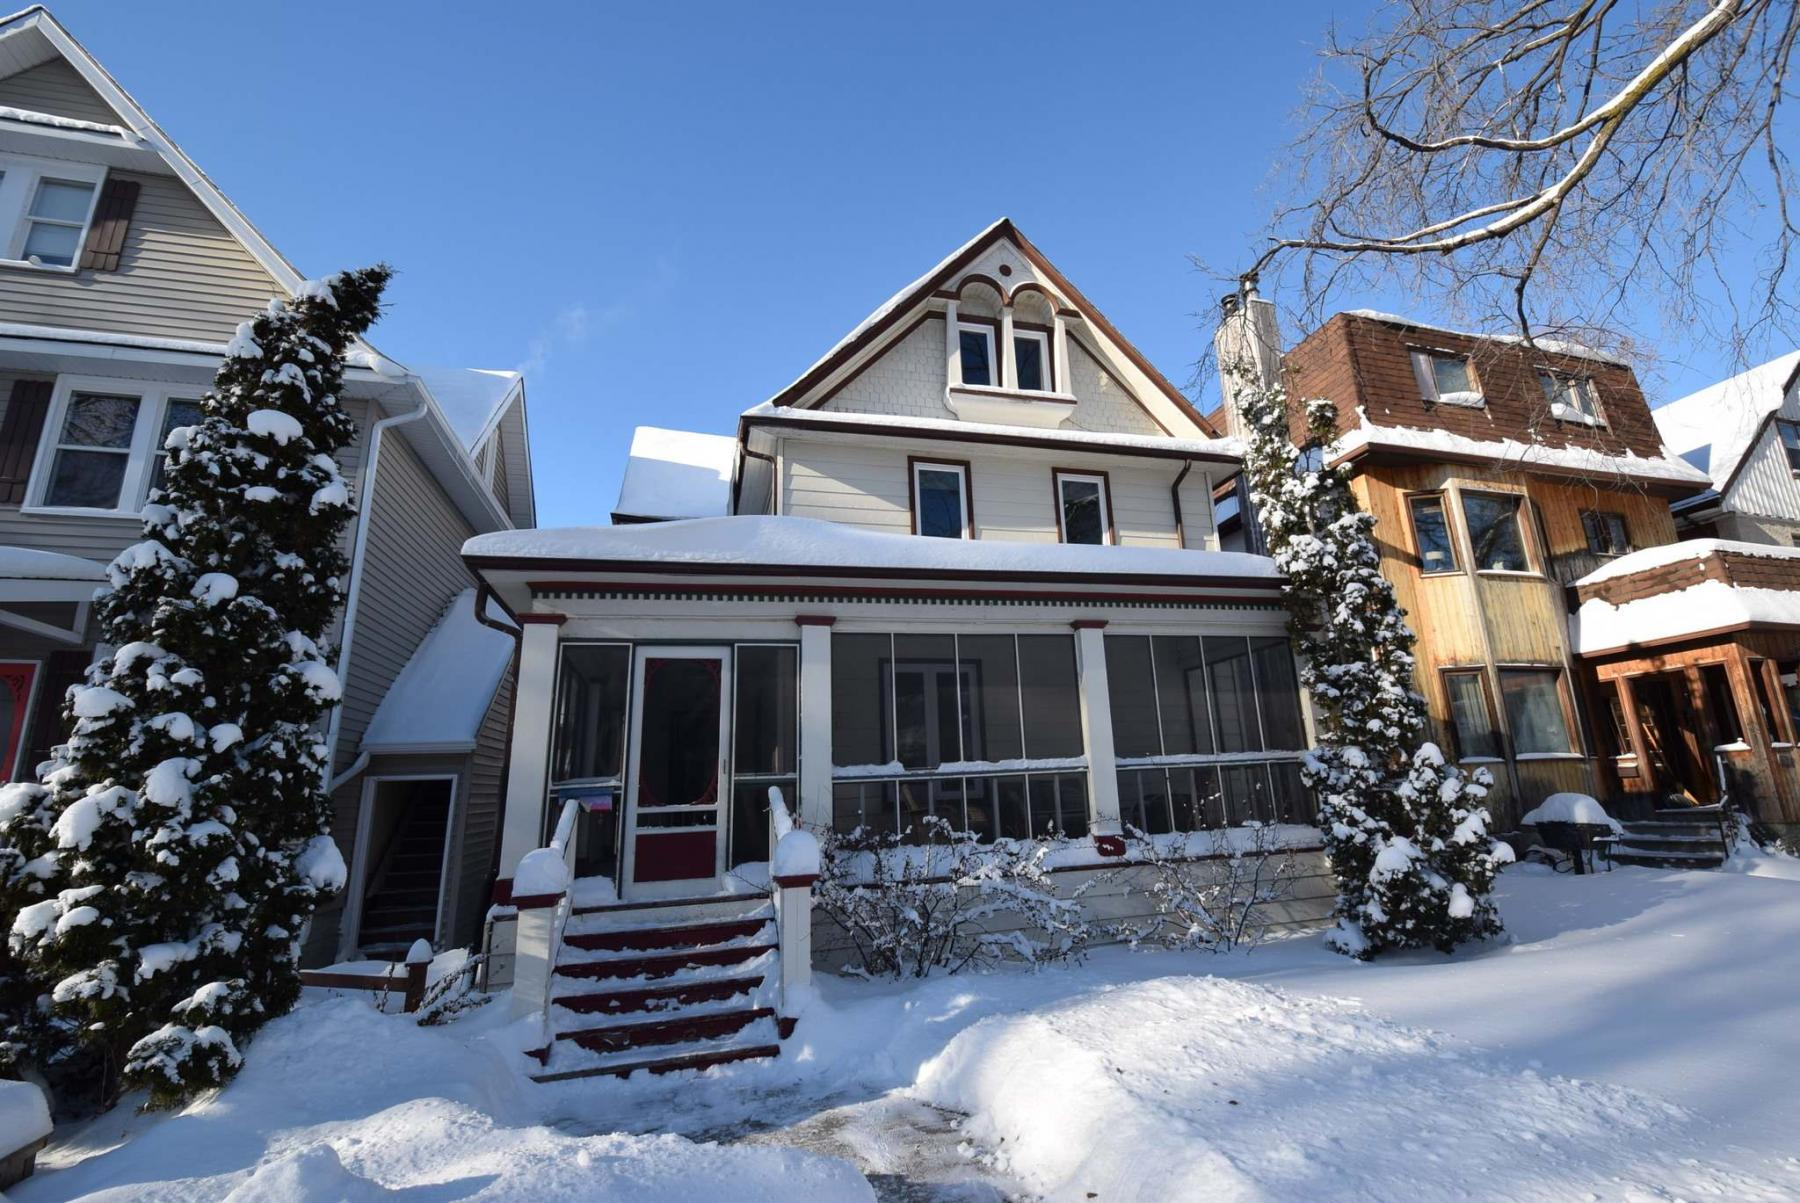 <p>Todd Lewys / Winnipeg Free Press</p><p>With its screened-in front porch, ornate windows and peaked roof, this home oozes character.</p>